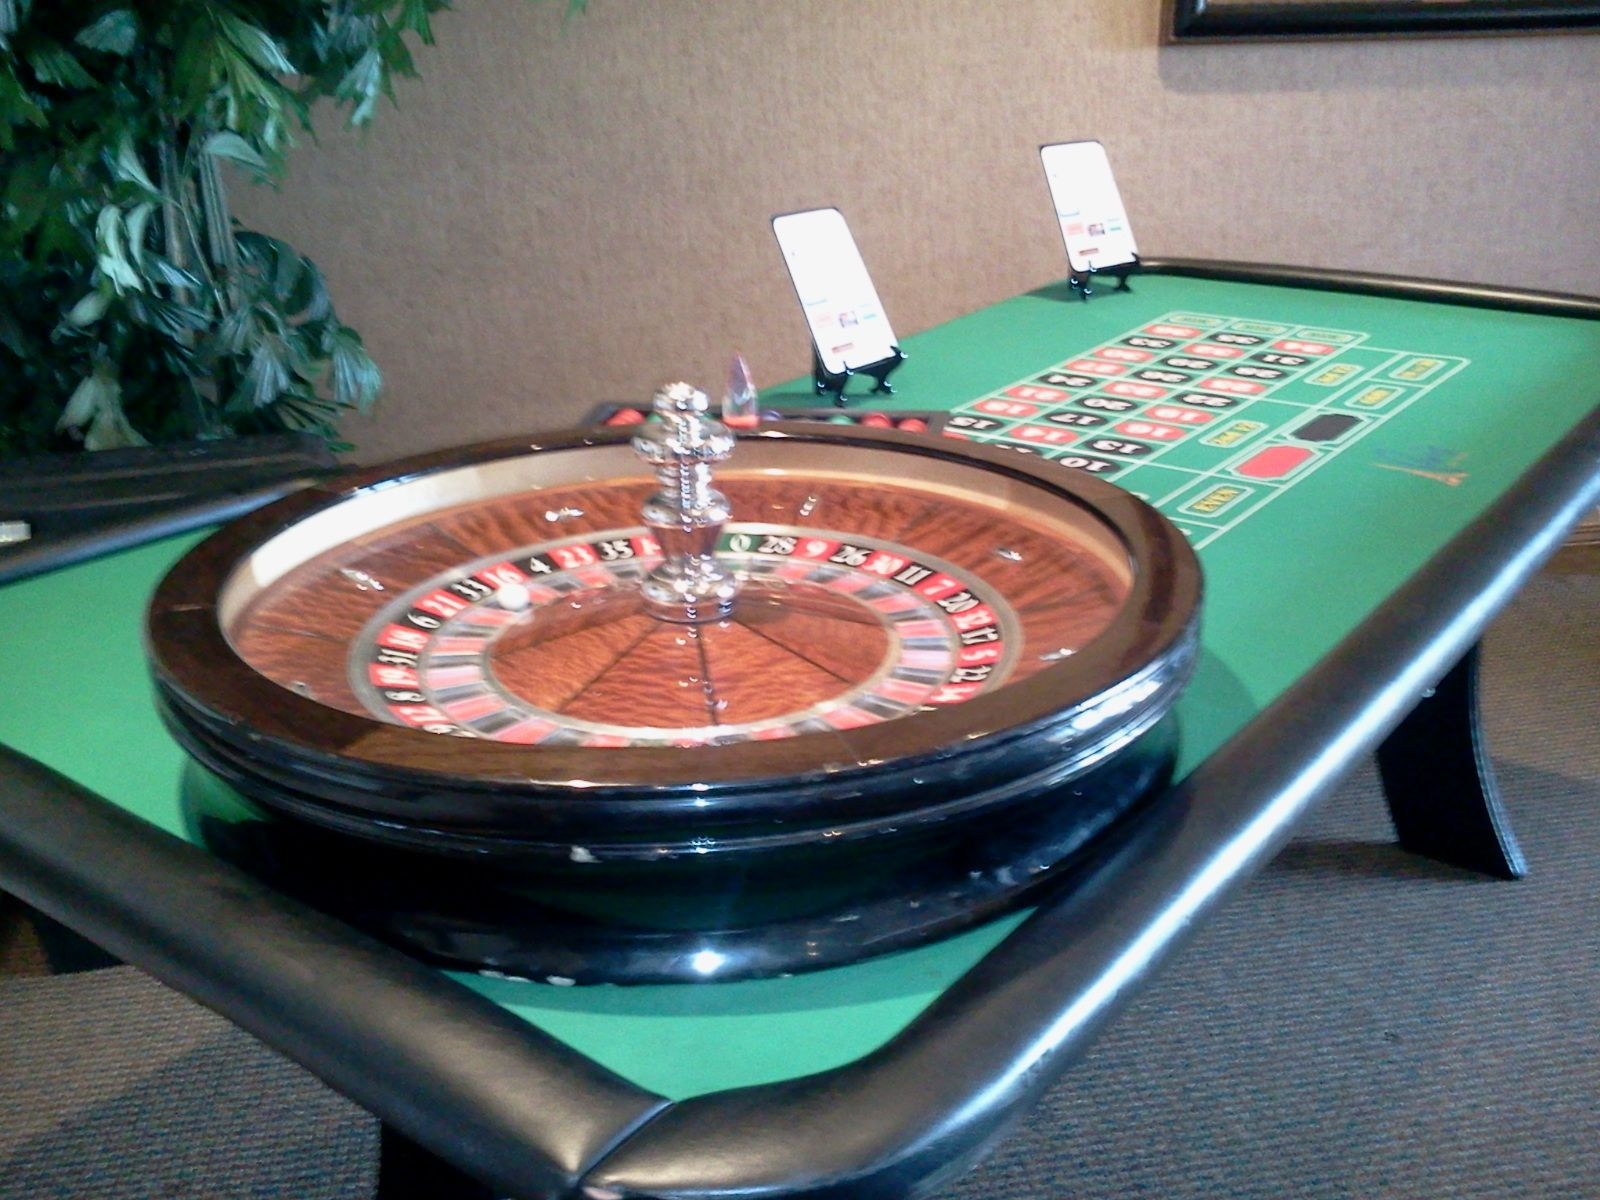 A Full Size Roulette Wheel And Table For You To Enjoy The Game Of Roulette Round And Round The Little Ball Goes Where It Roulette Wheel Roulette Casino Table